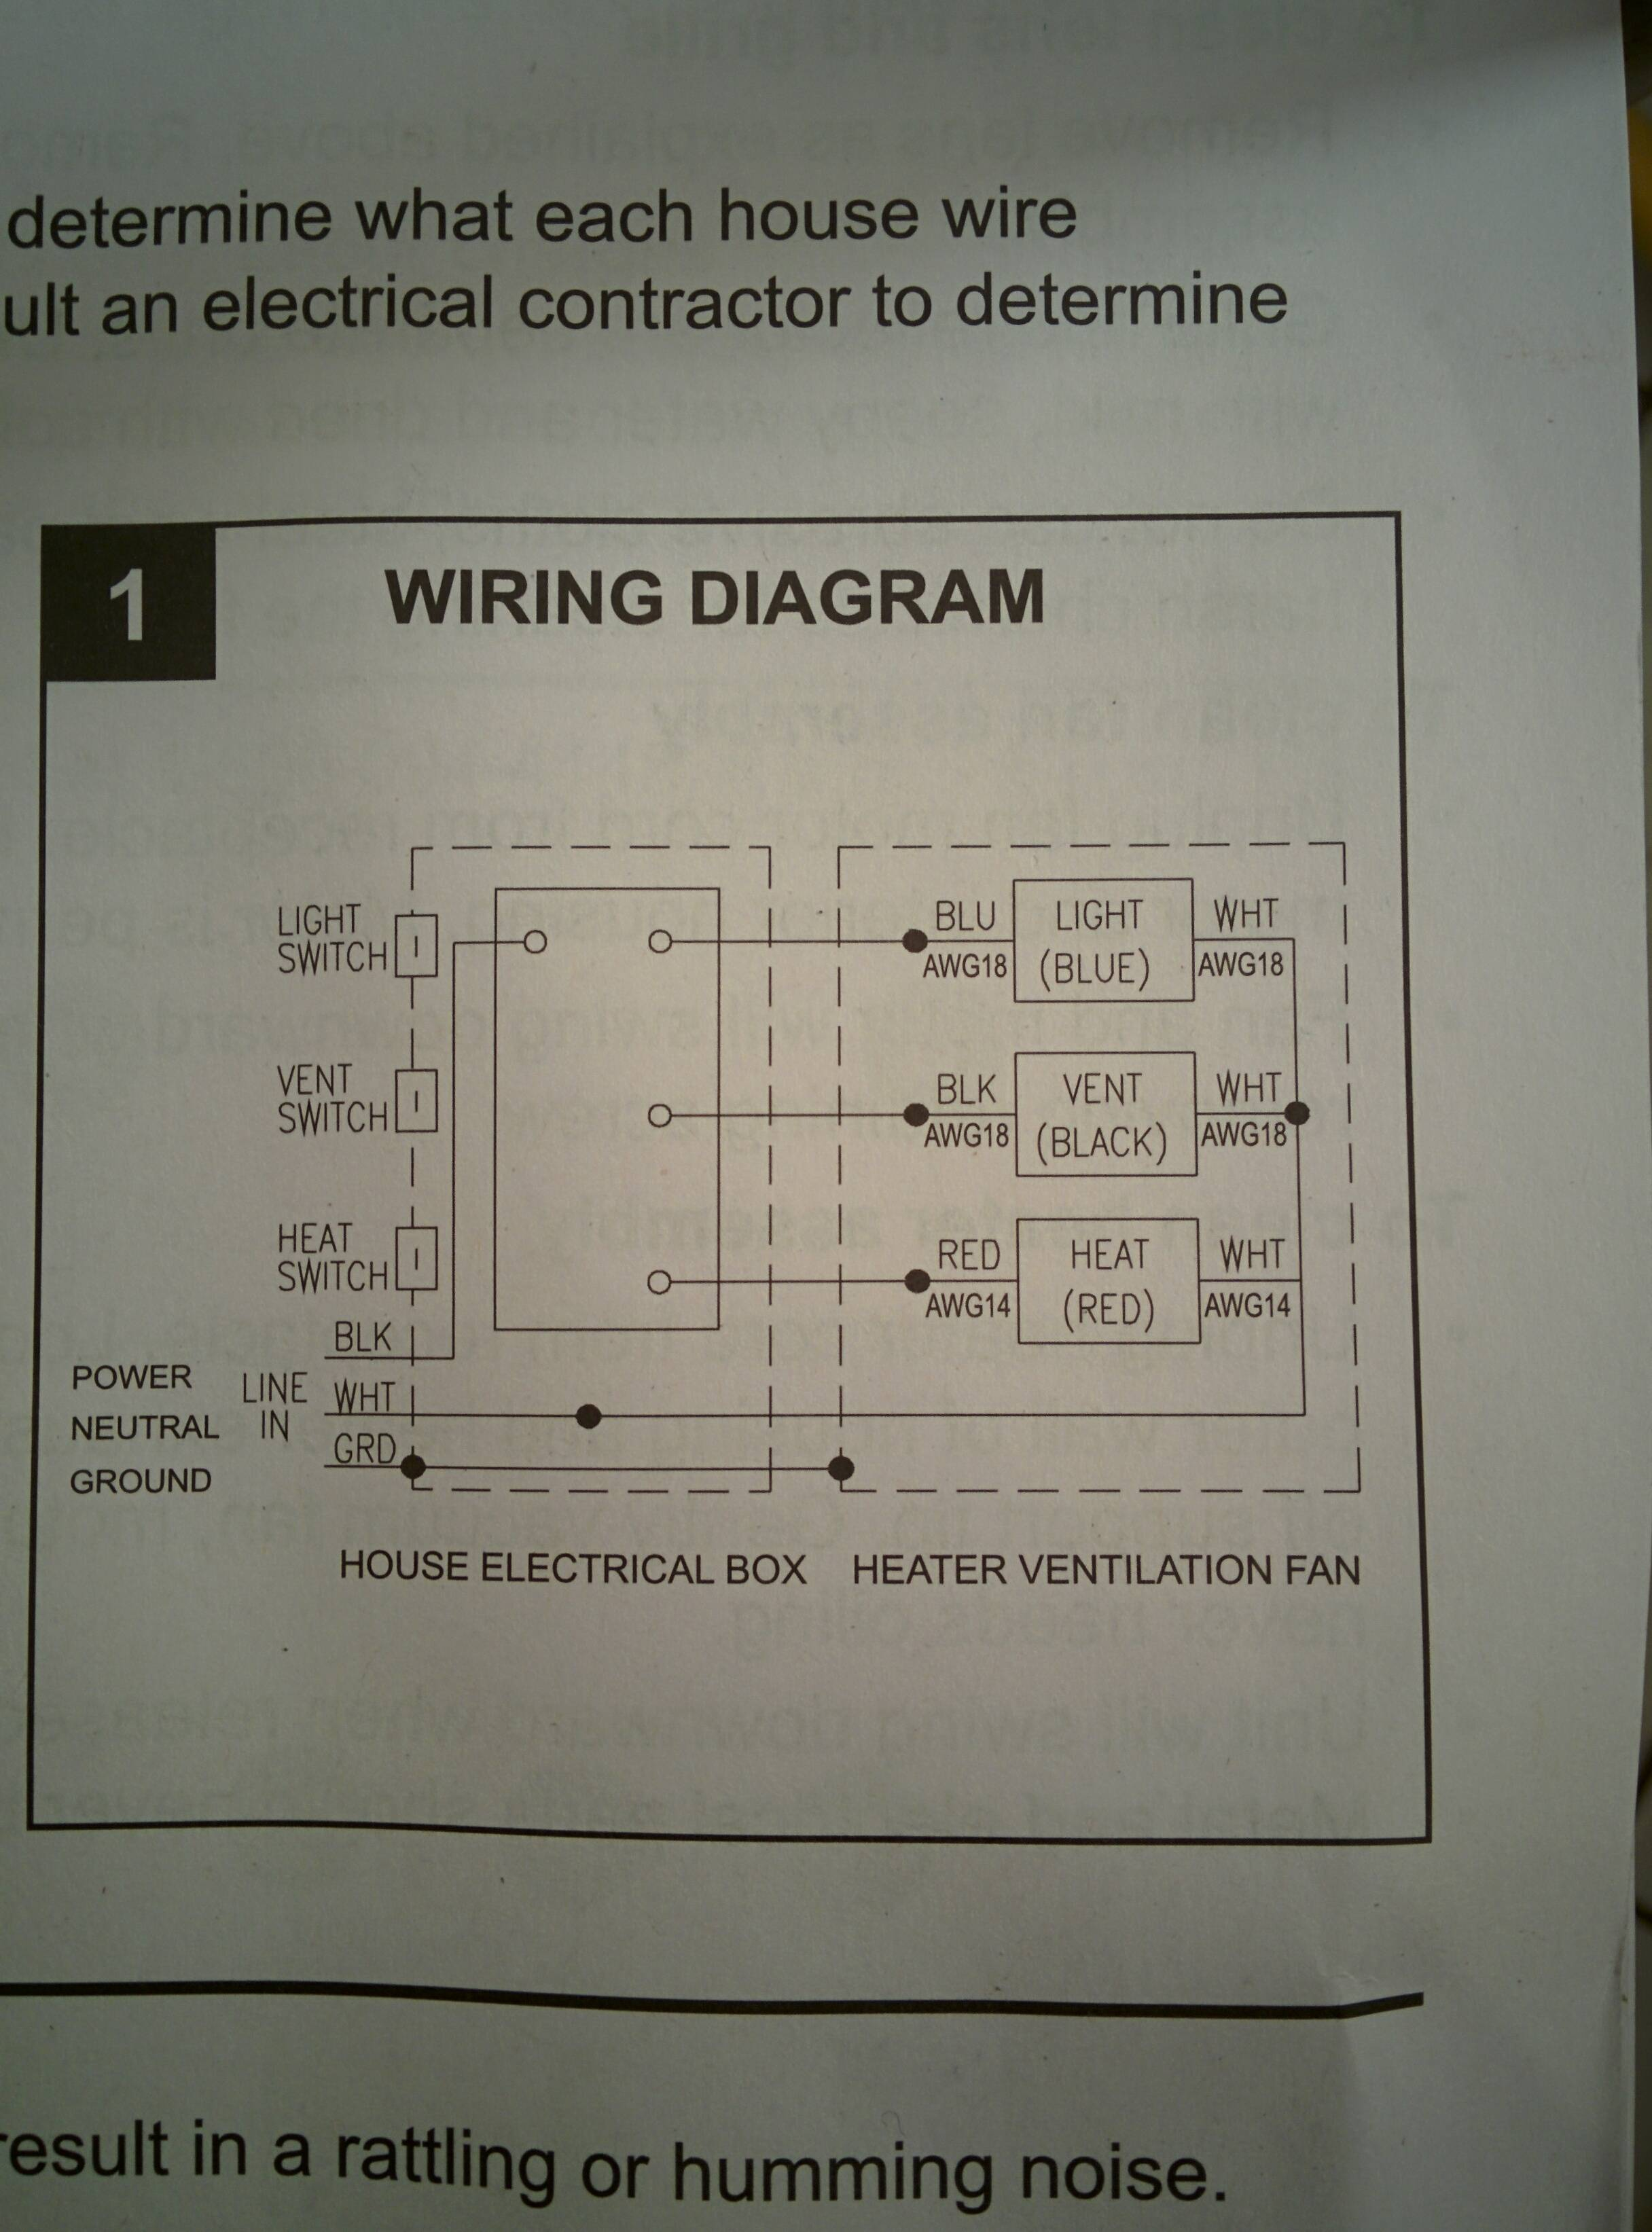 4 Wire Ceiling Fan Wiring Diagram Electrical Wiring Bathroom Exhaust Fan With Heater